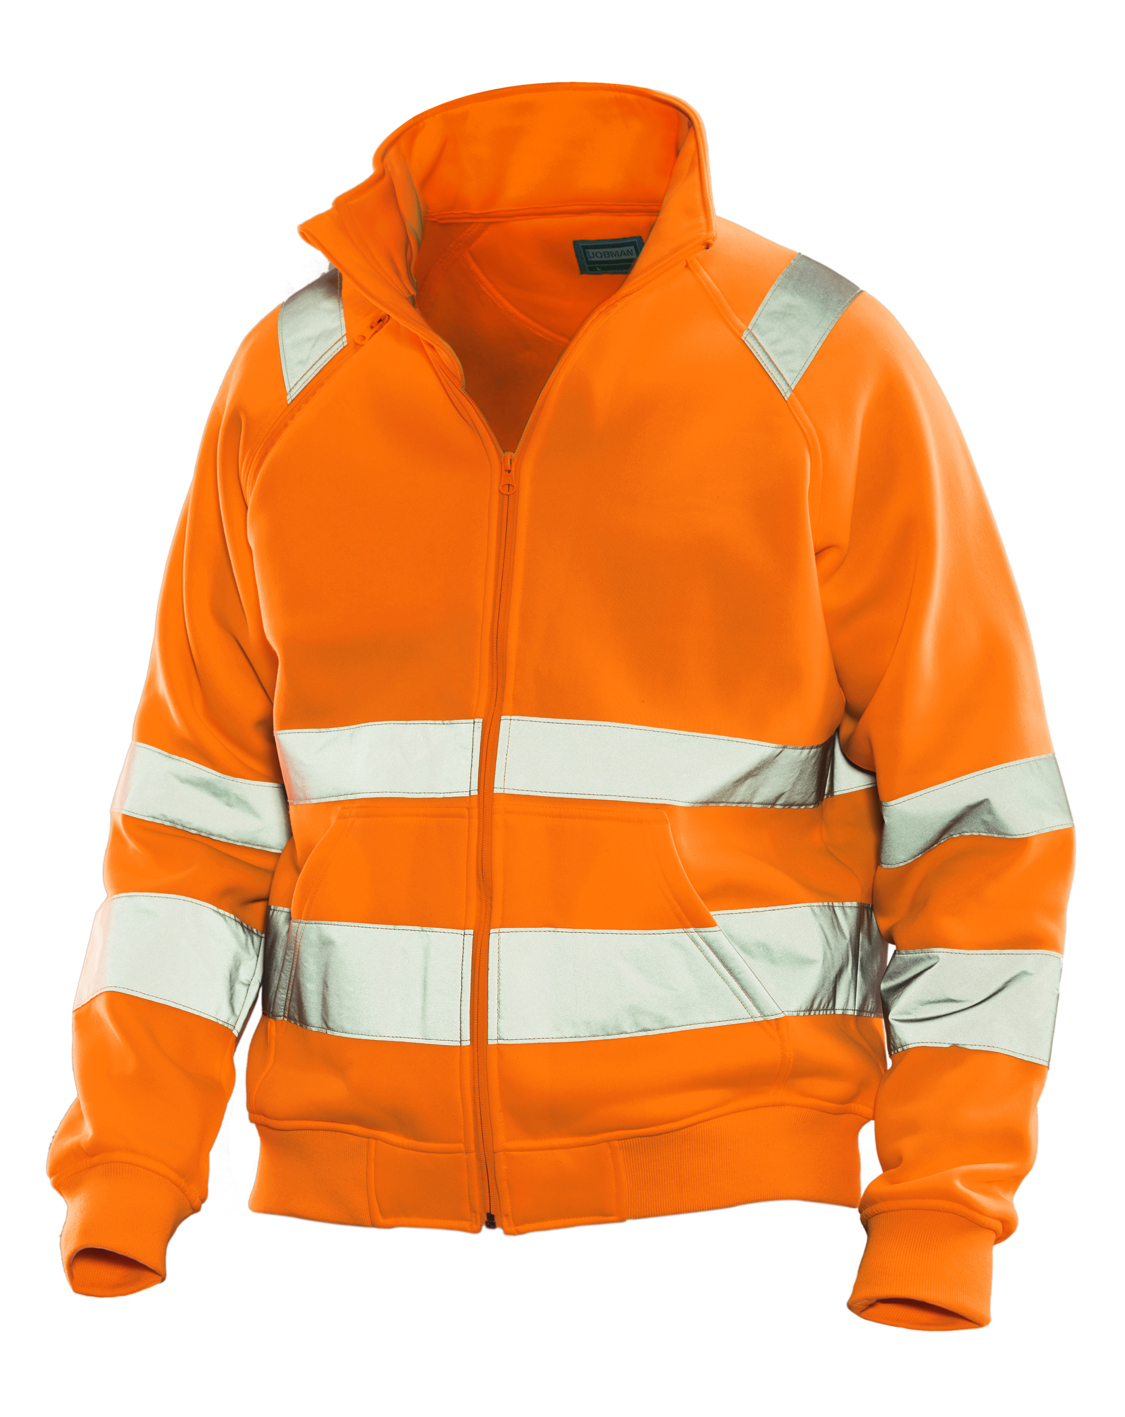 High visibility sweatshirt jacket